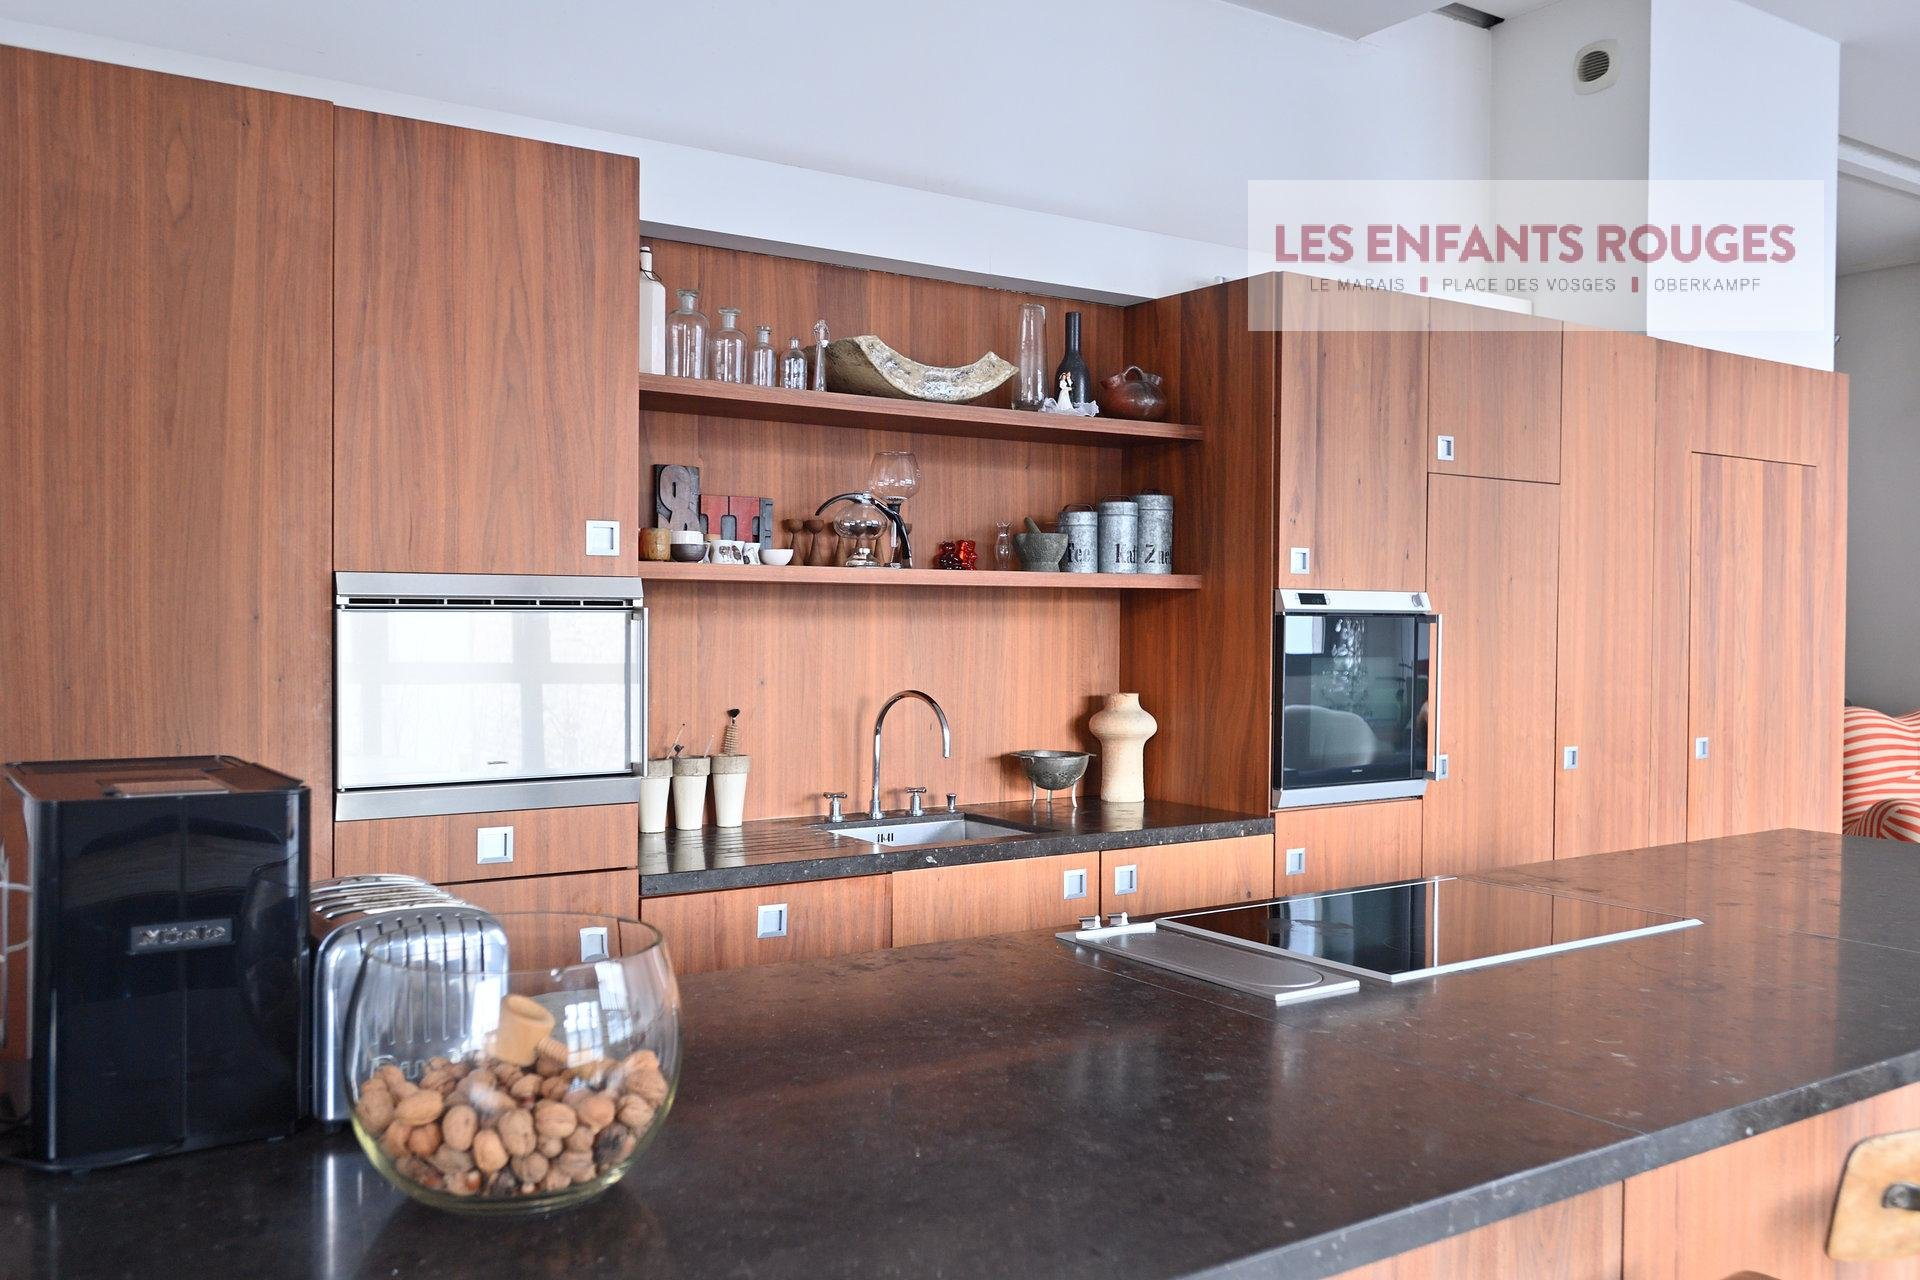 Sale Apartment - Paris 19th (Paris 19ème)